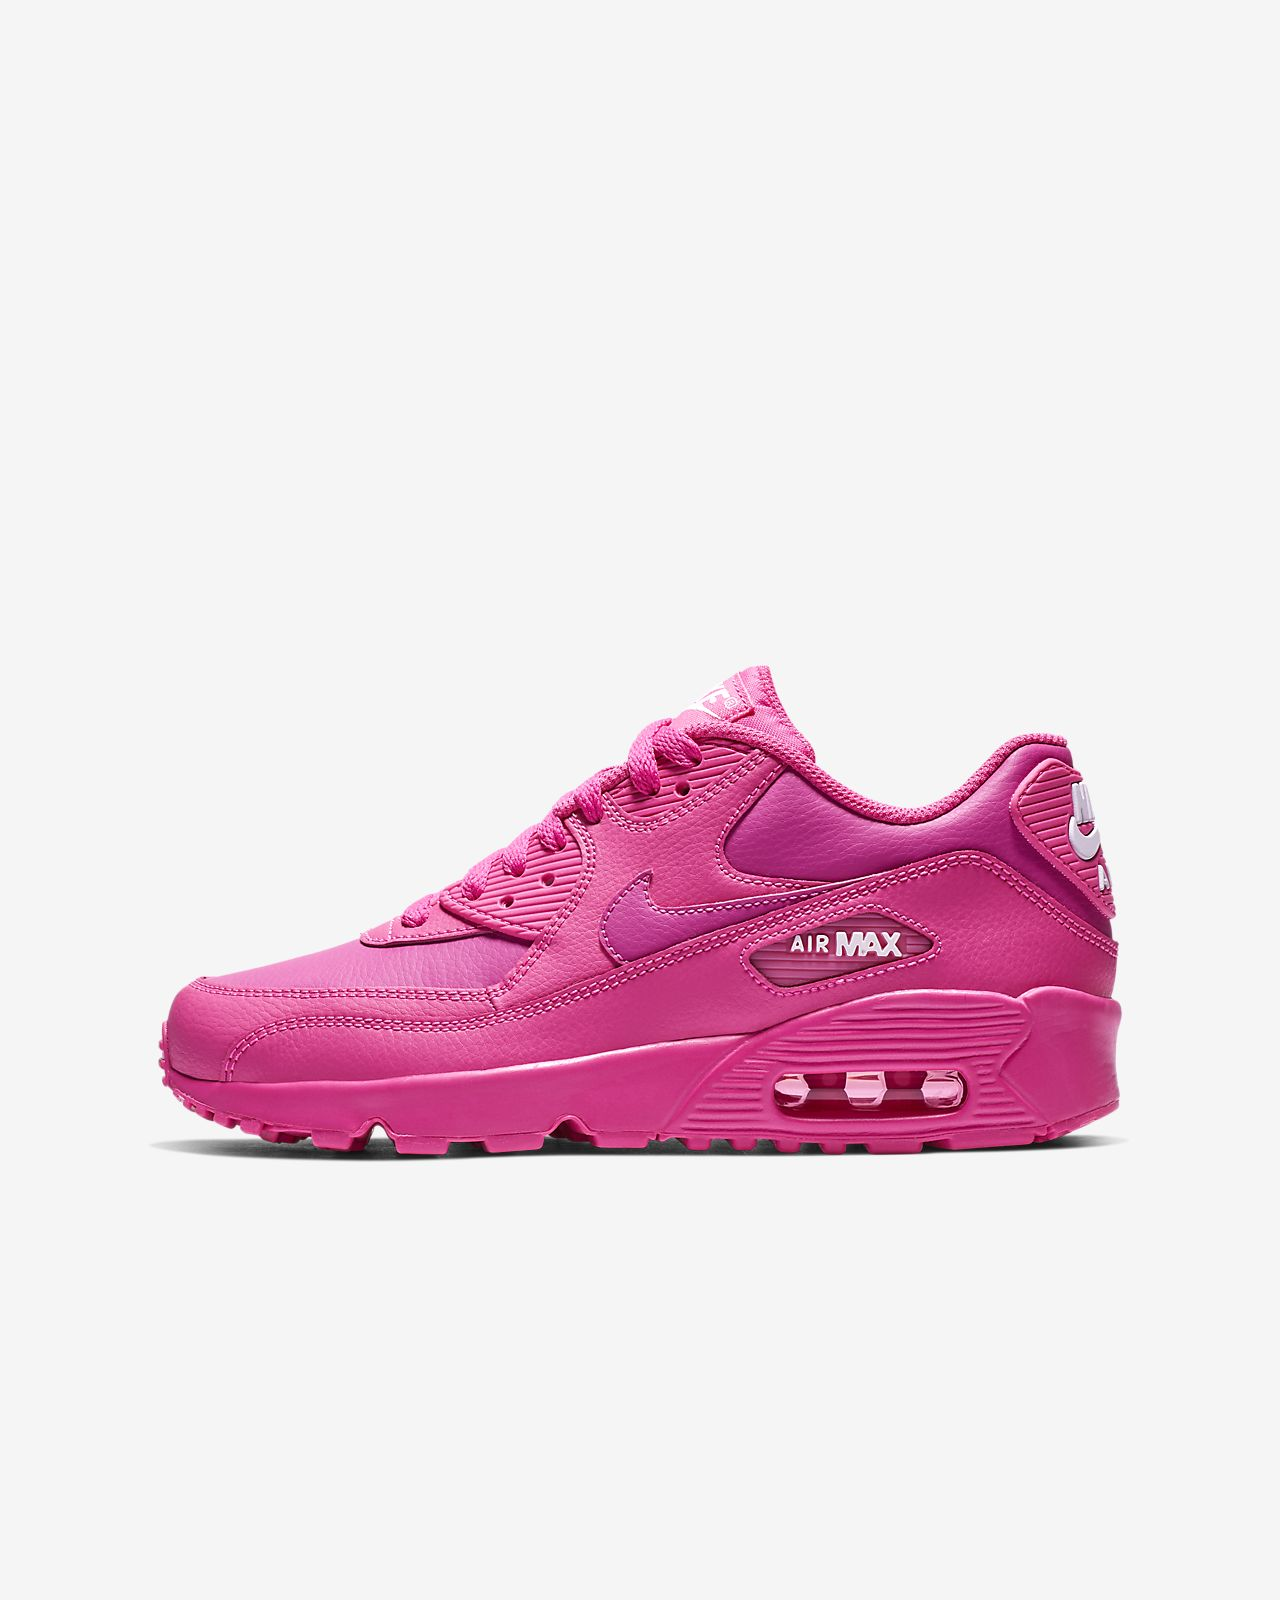 Nike Air Max 90 Leather Big Kids' Shoe